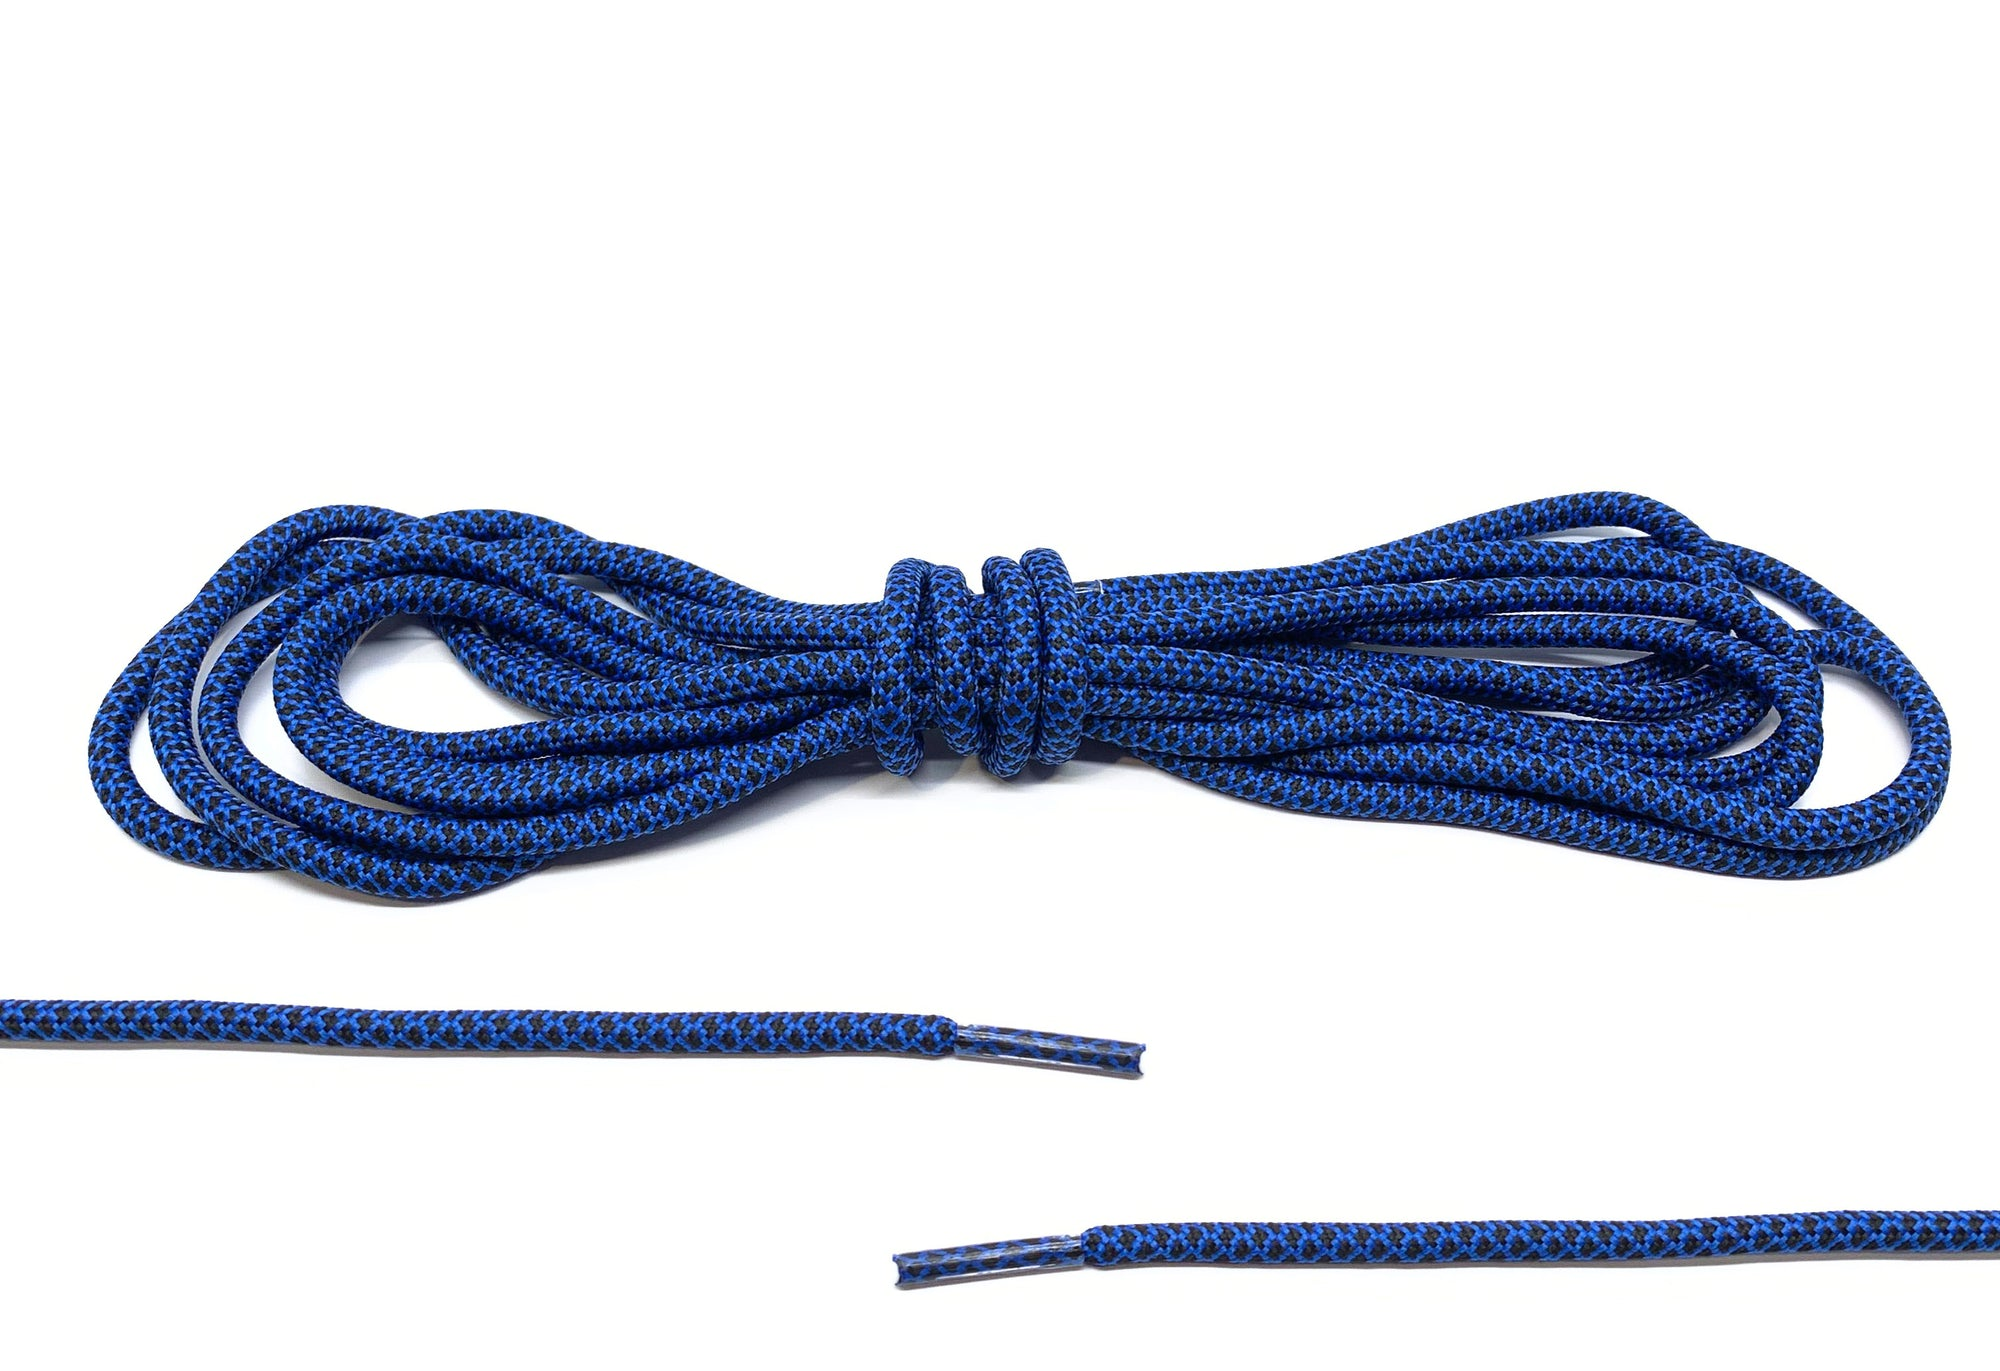 Blue Rope Laces - Belaced